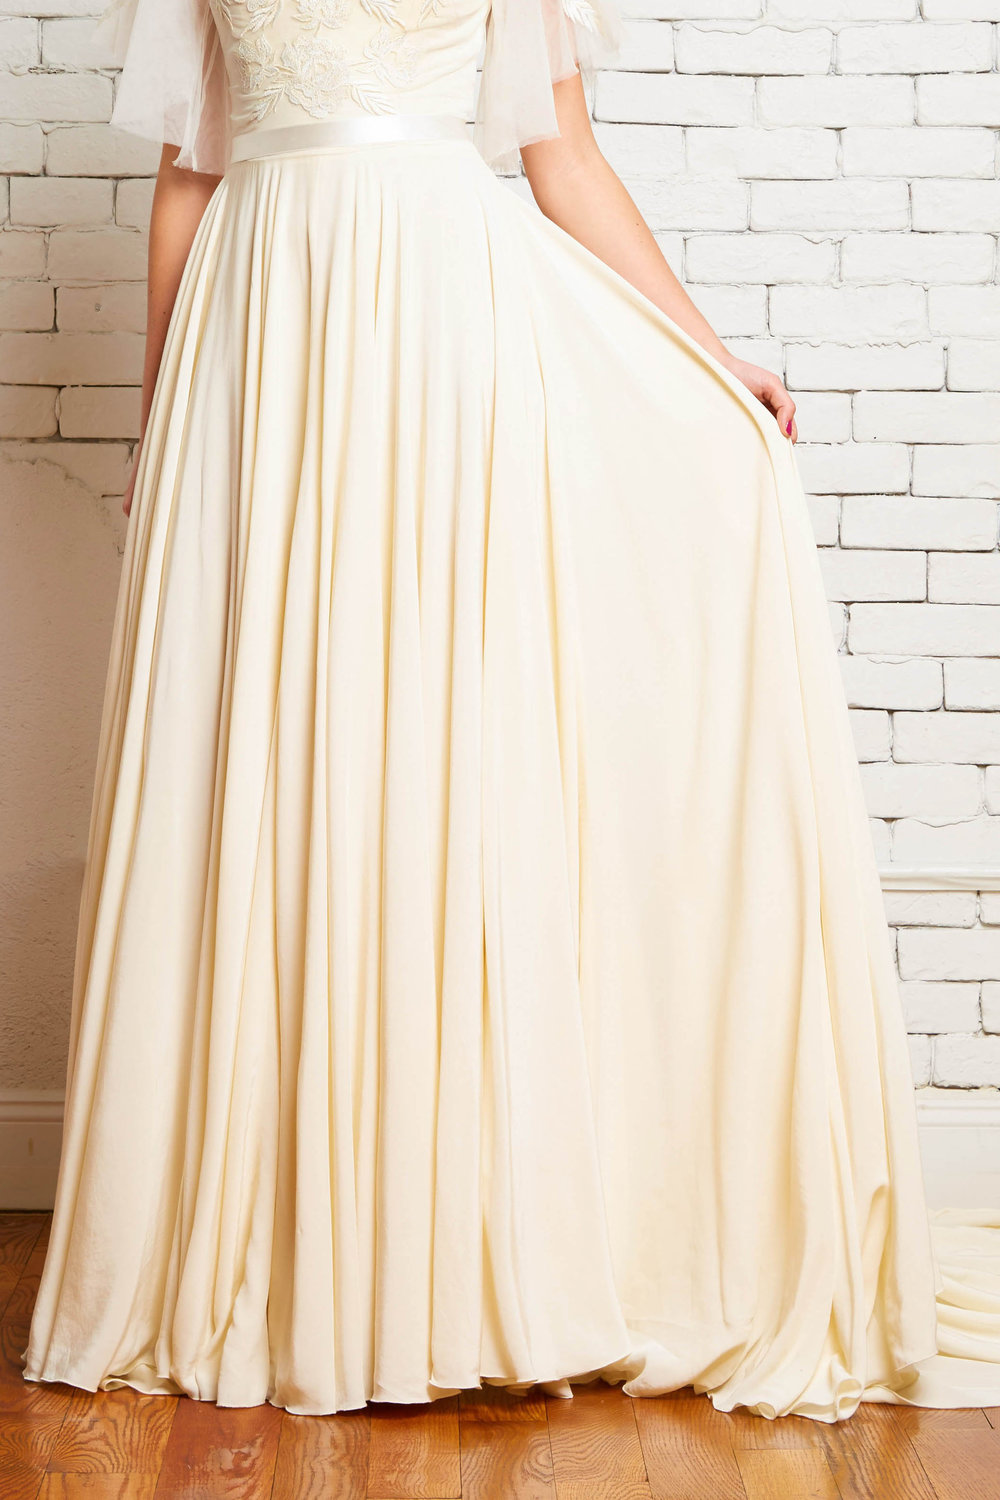 11C Hudson Front 1-Rebeccca Schoneveld-Modern_Boho_Bride_Circle_Skirt_Romantic.jpg